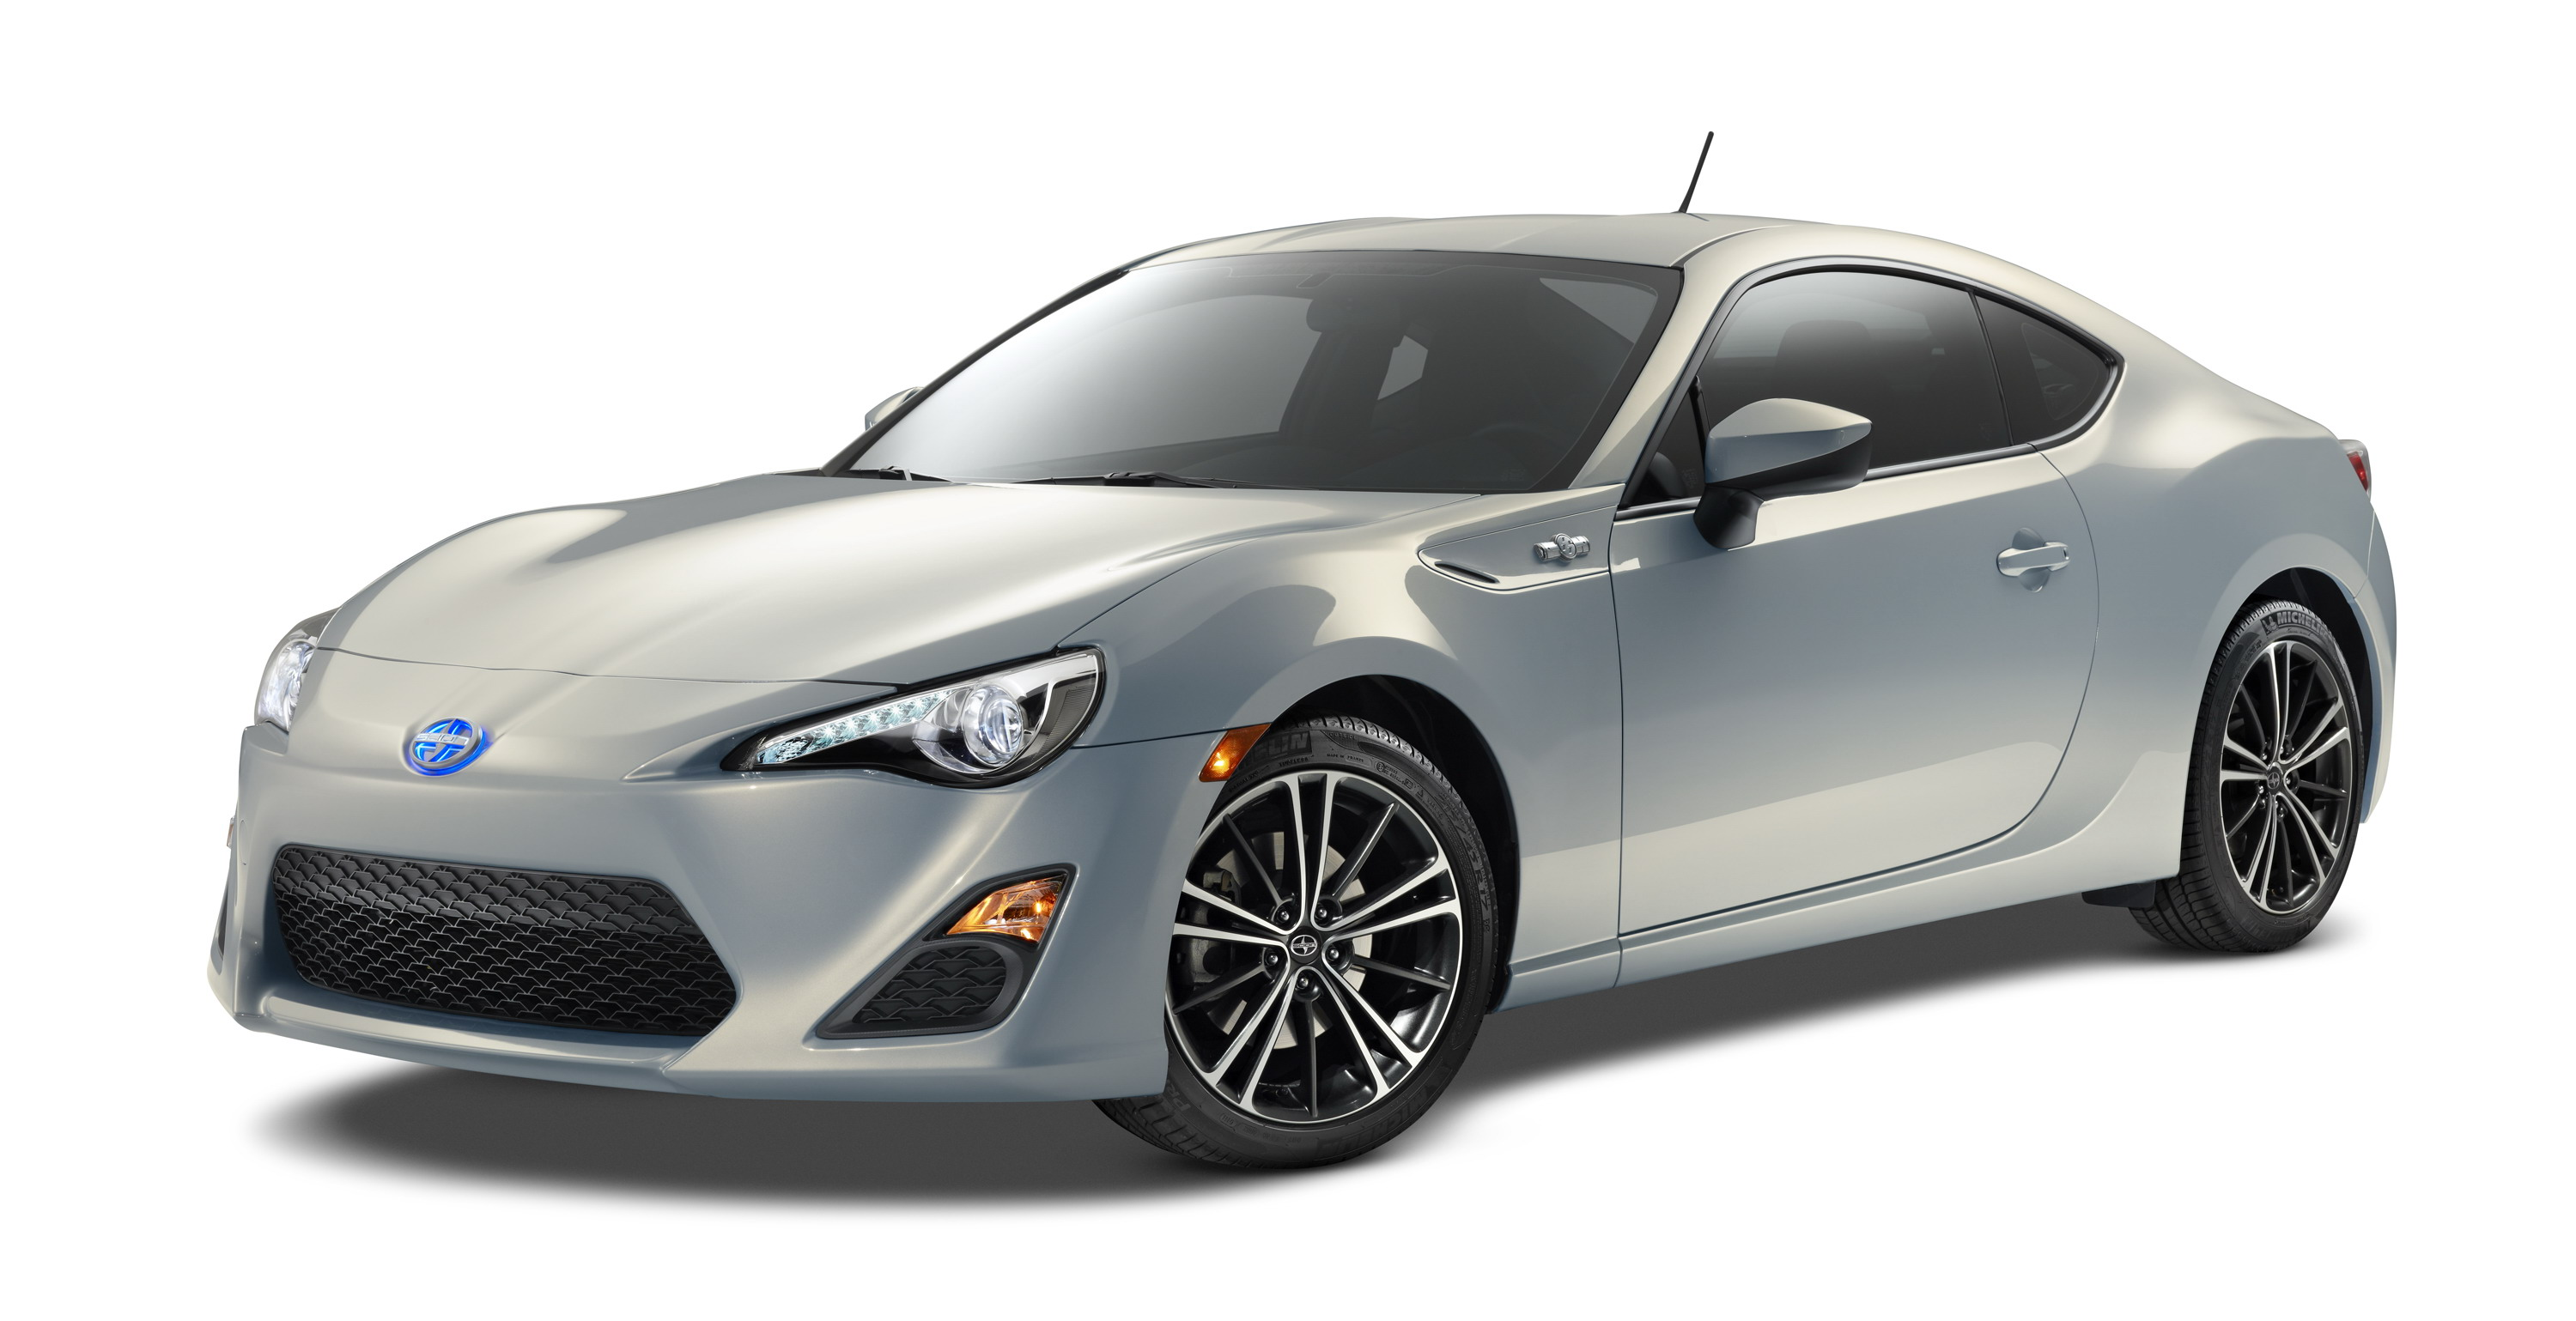 2013 Scion 10 Series FRS  Top Speed